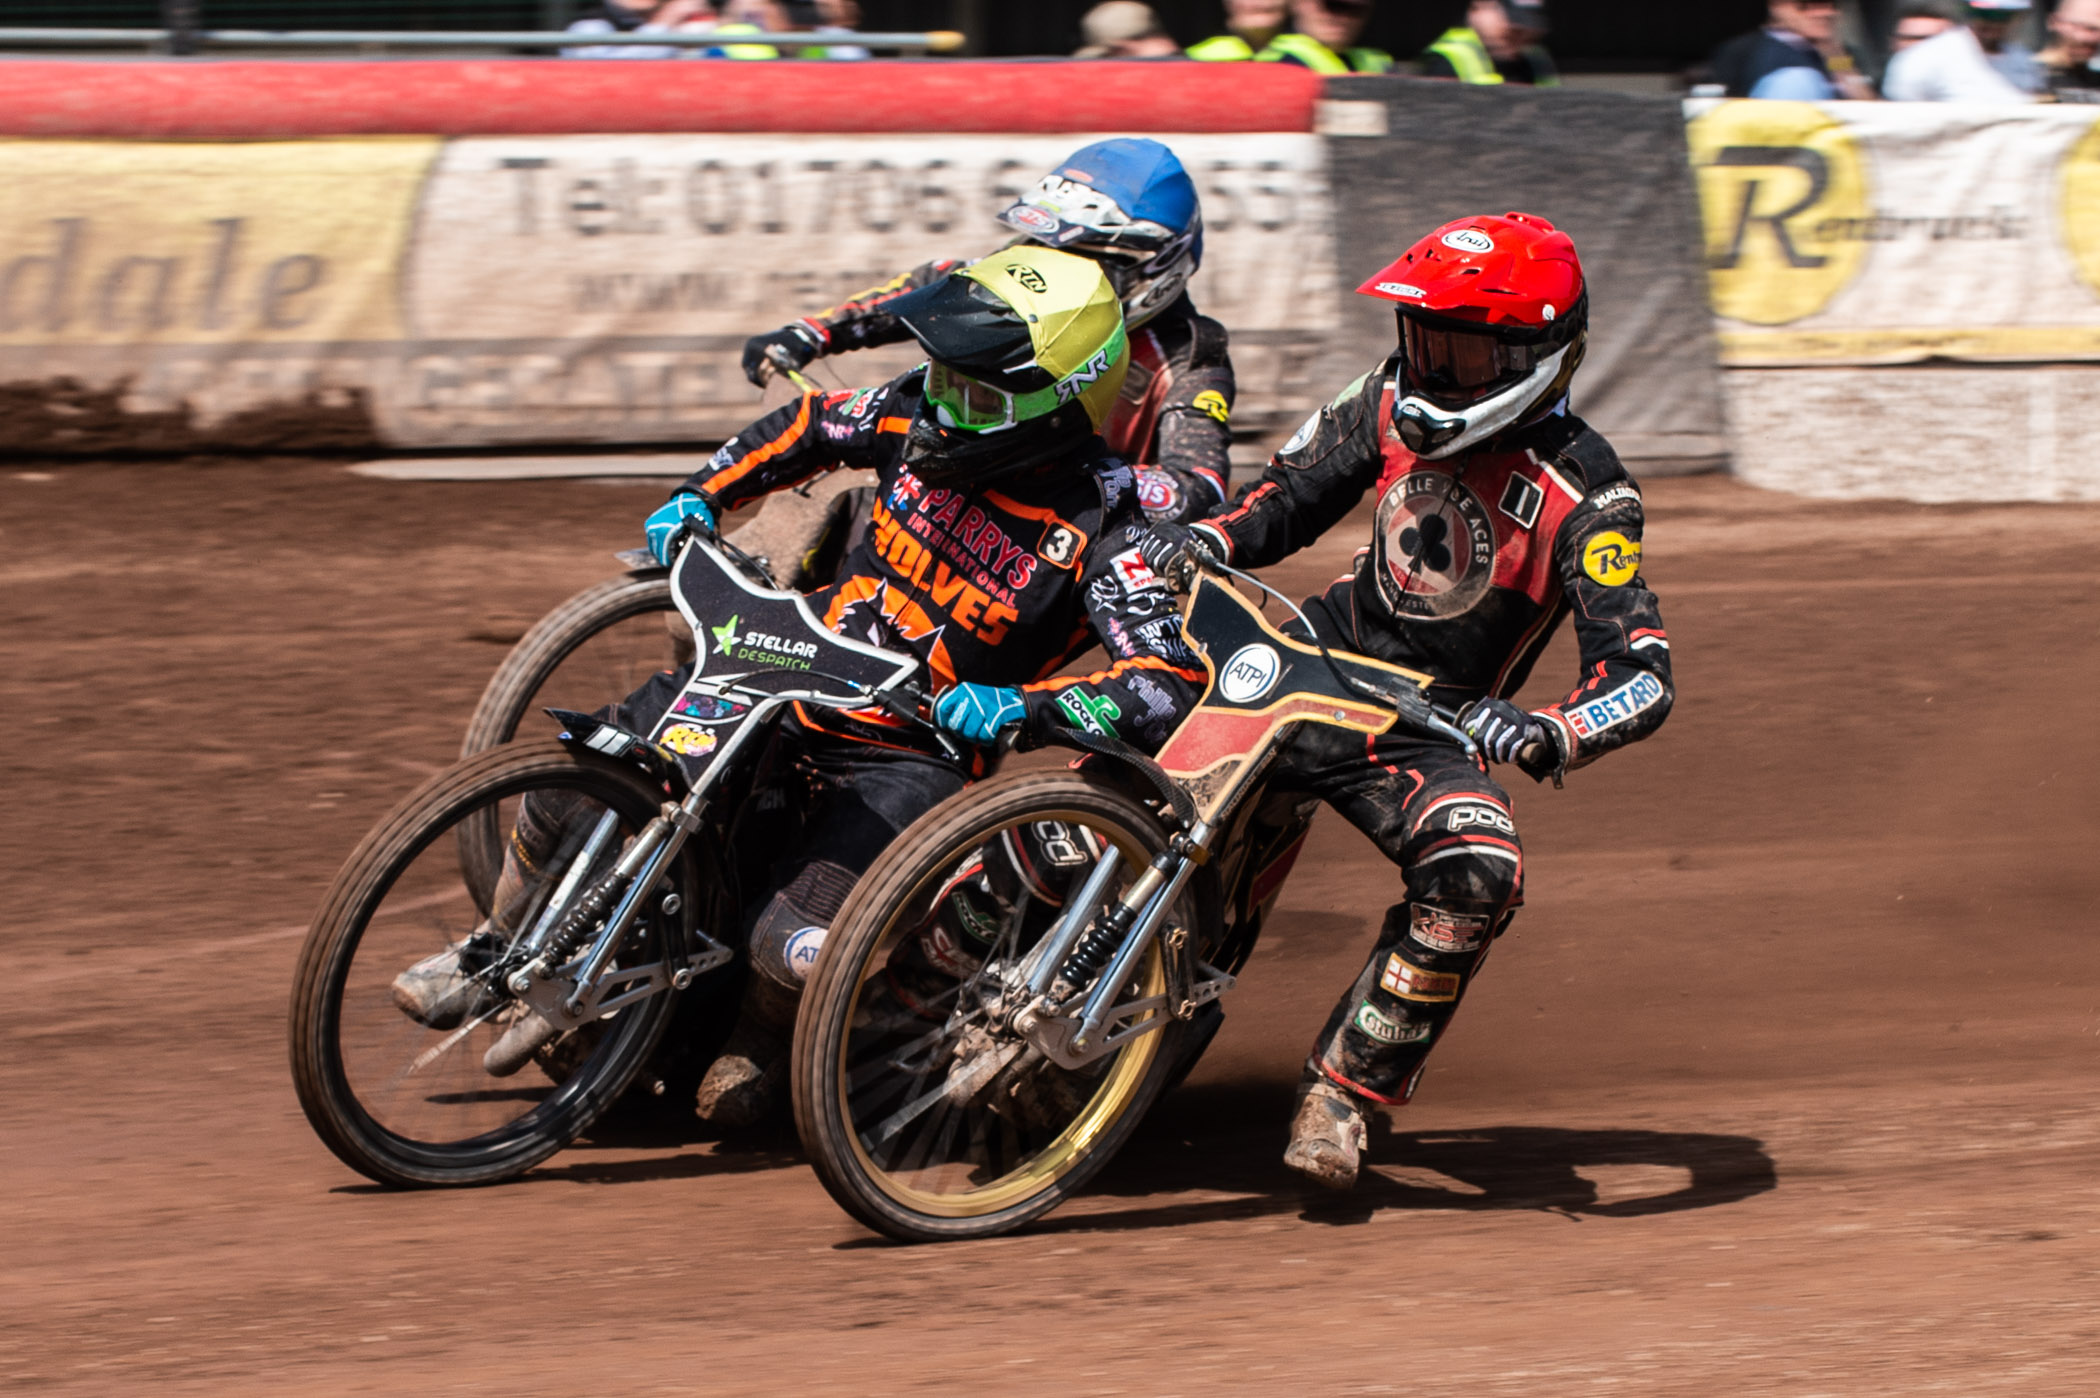 Bar some cuts and scrapes, Max Fricke escaped injury after falling spectacularly in Heat 10 at home